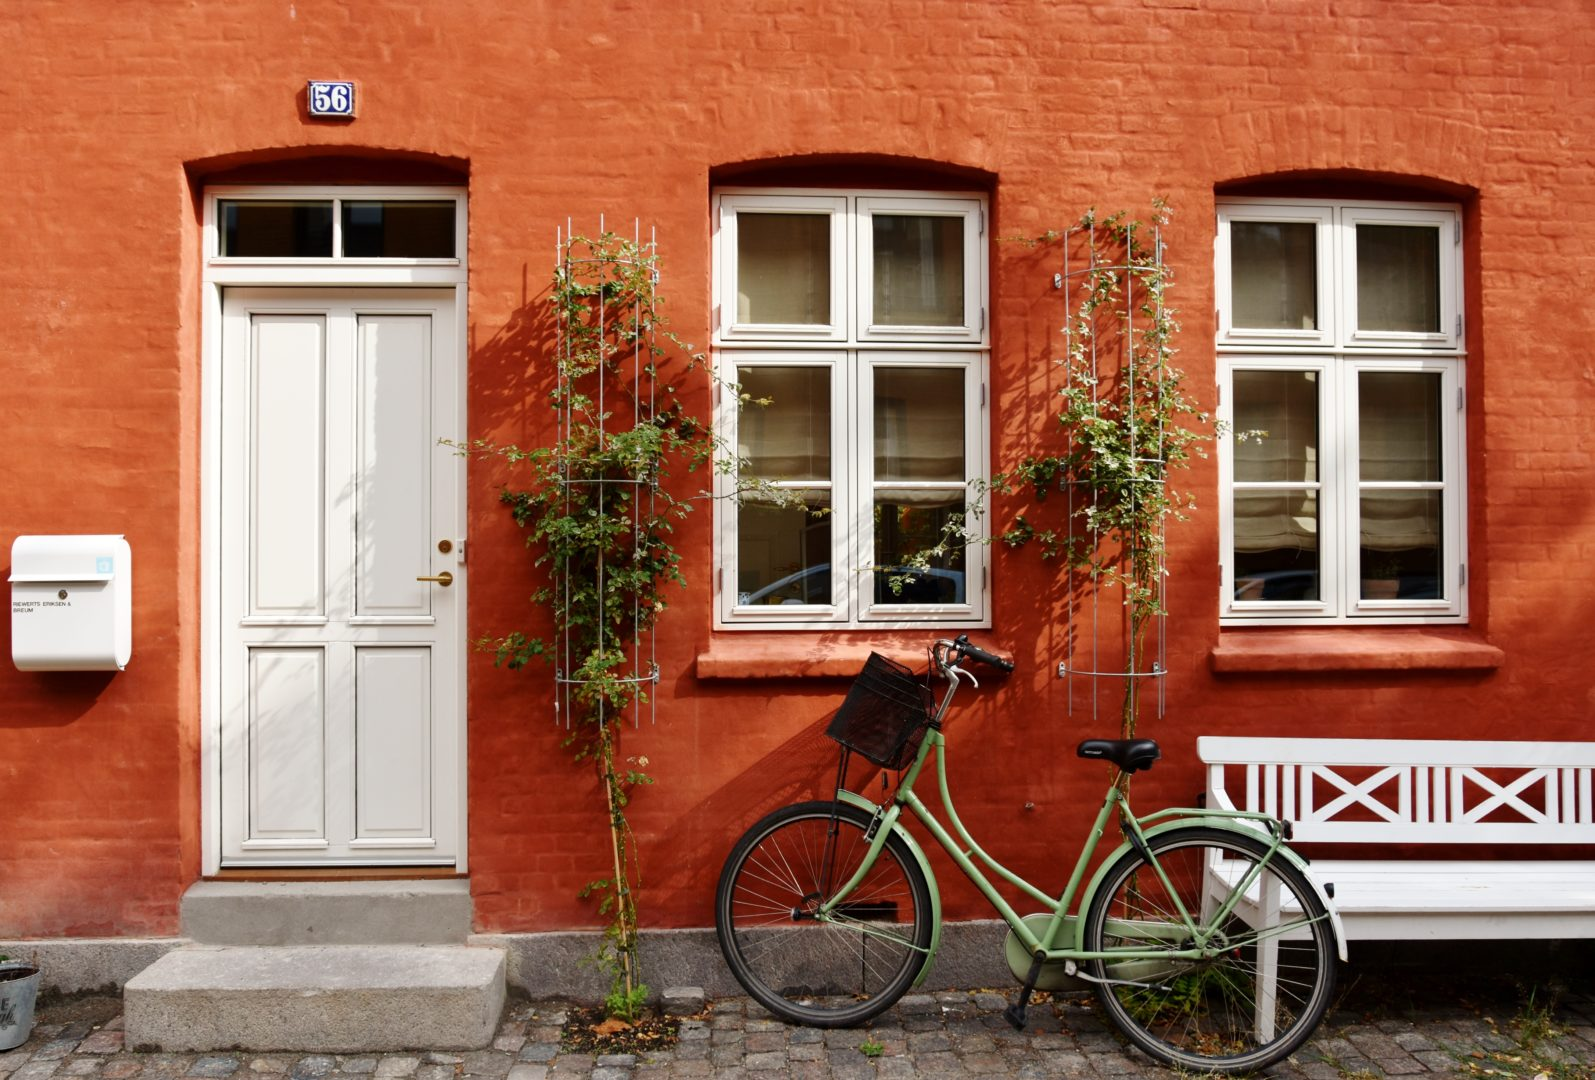 Case colorate e biciclette a Copenaghen